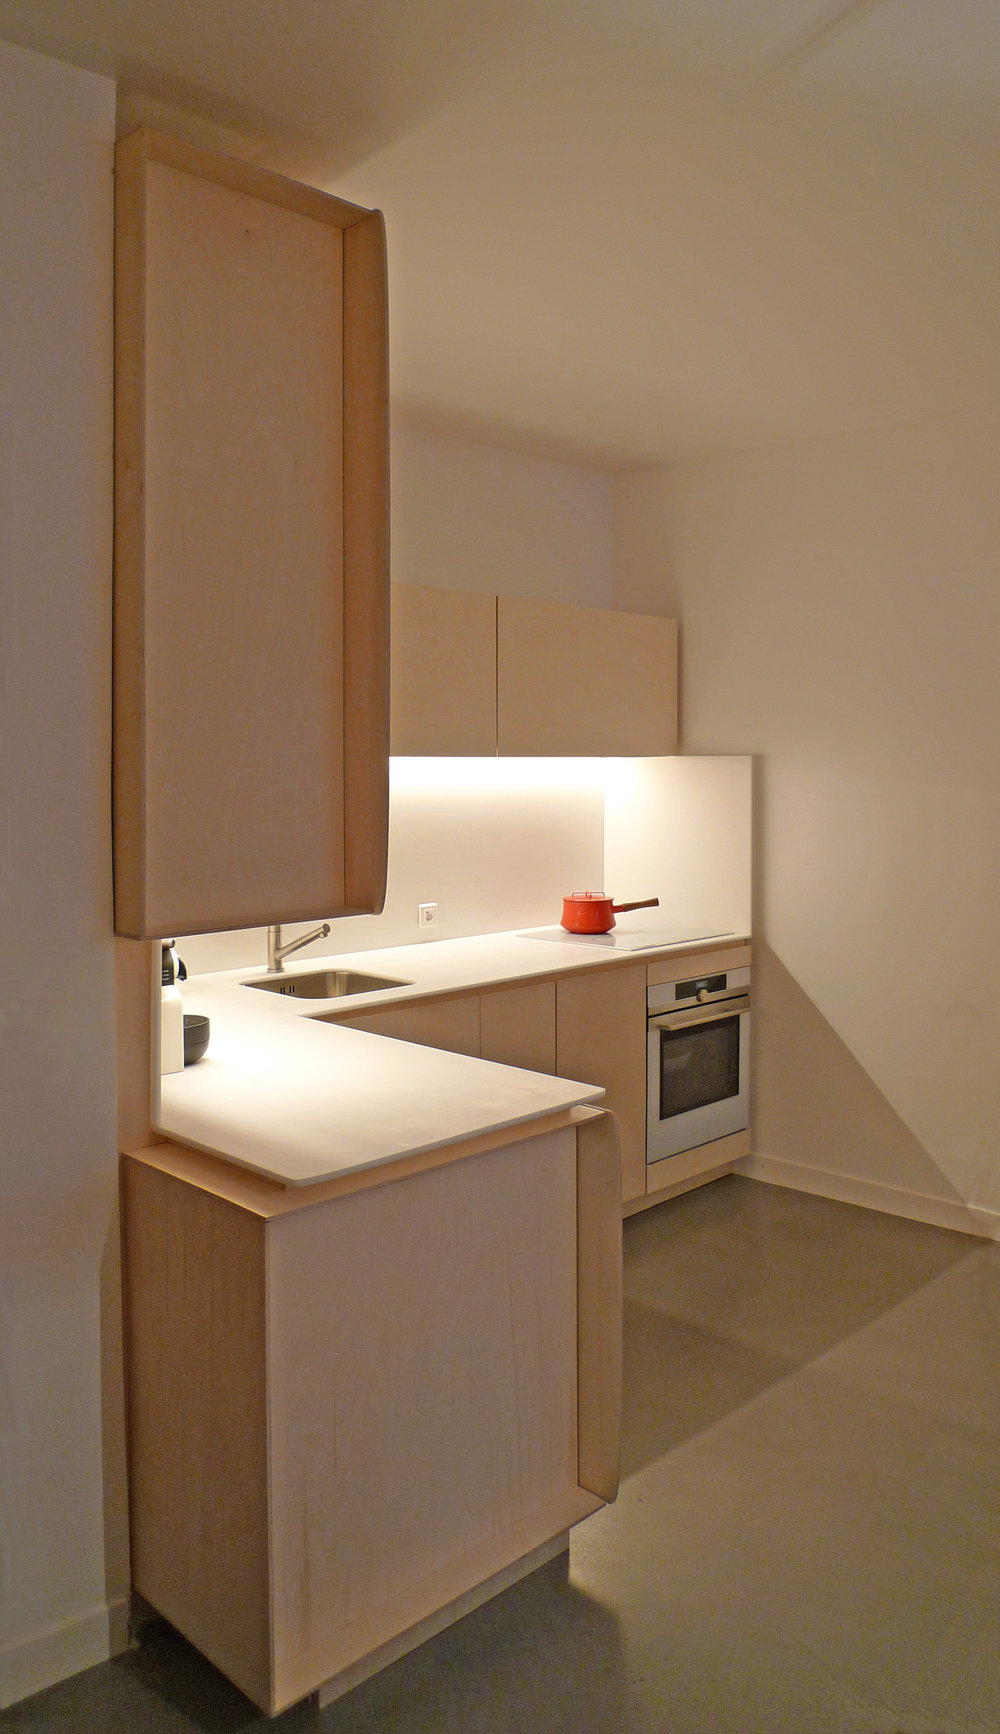 kitchen_A+A Cooren2.jpg